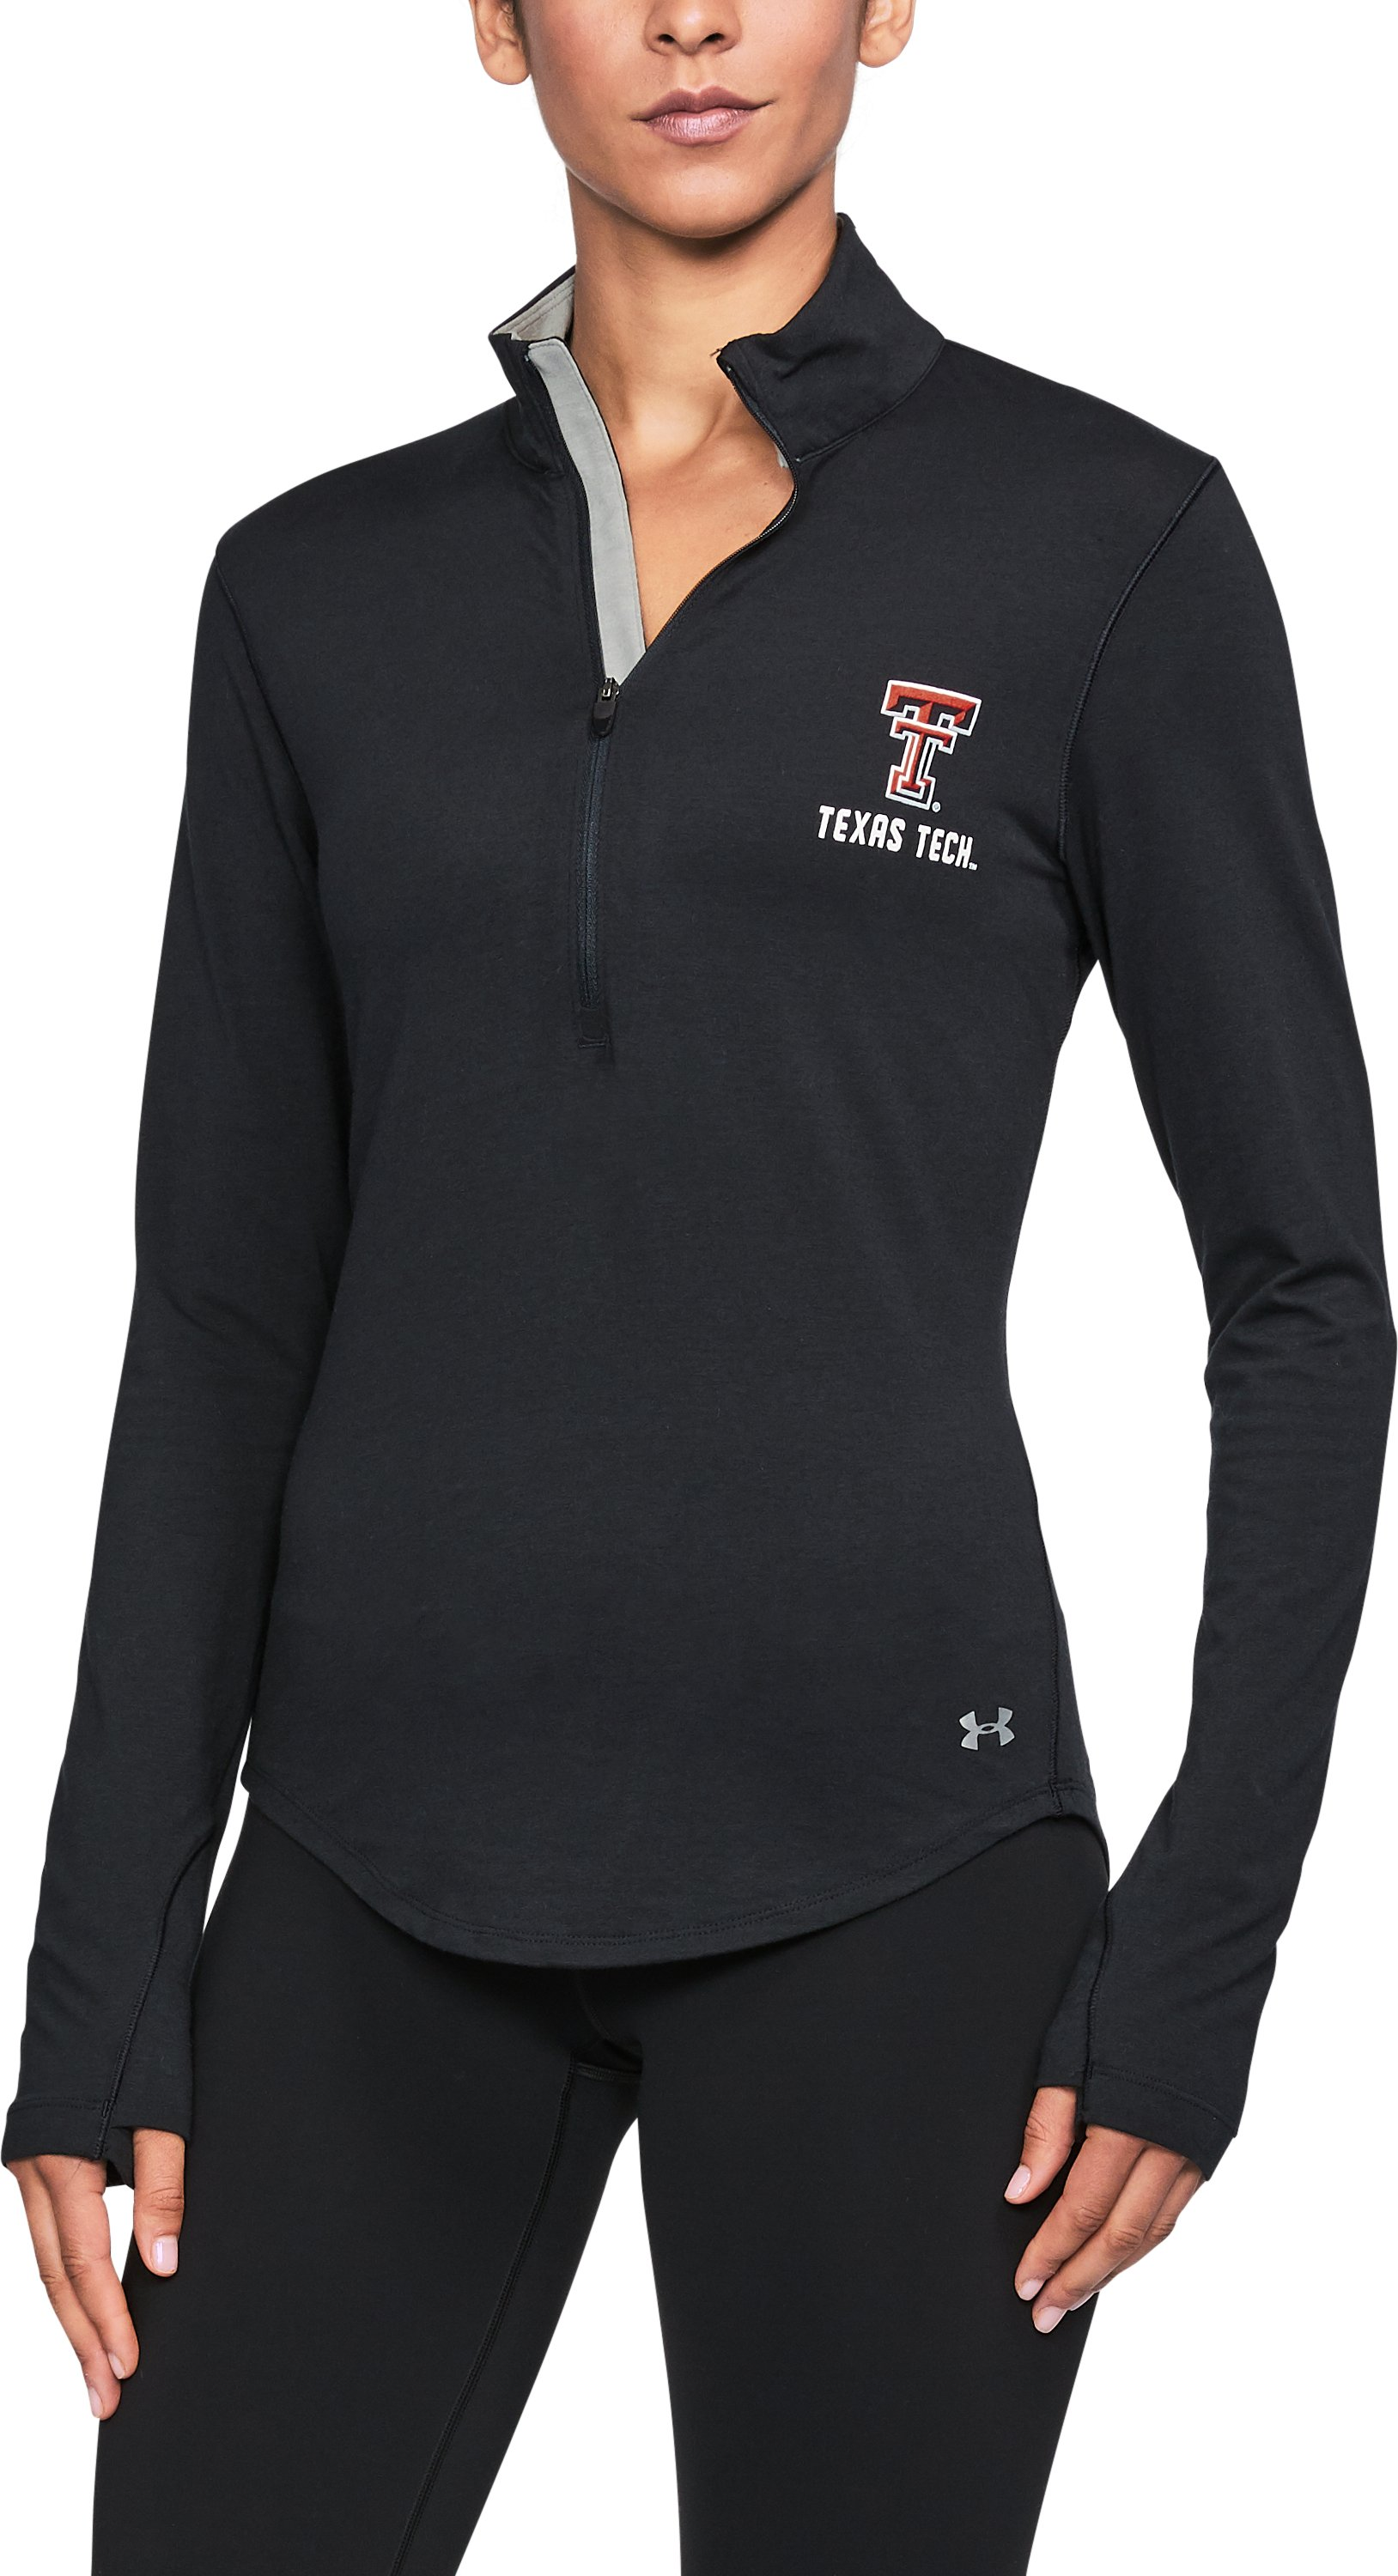 Women's Texas Tech Charged Cotton® ¼ Zip, Black